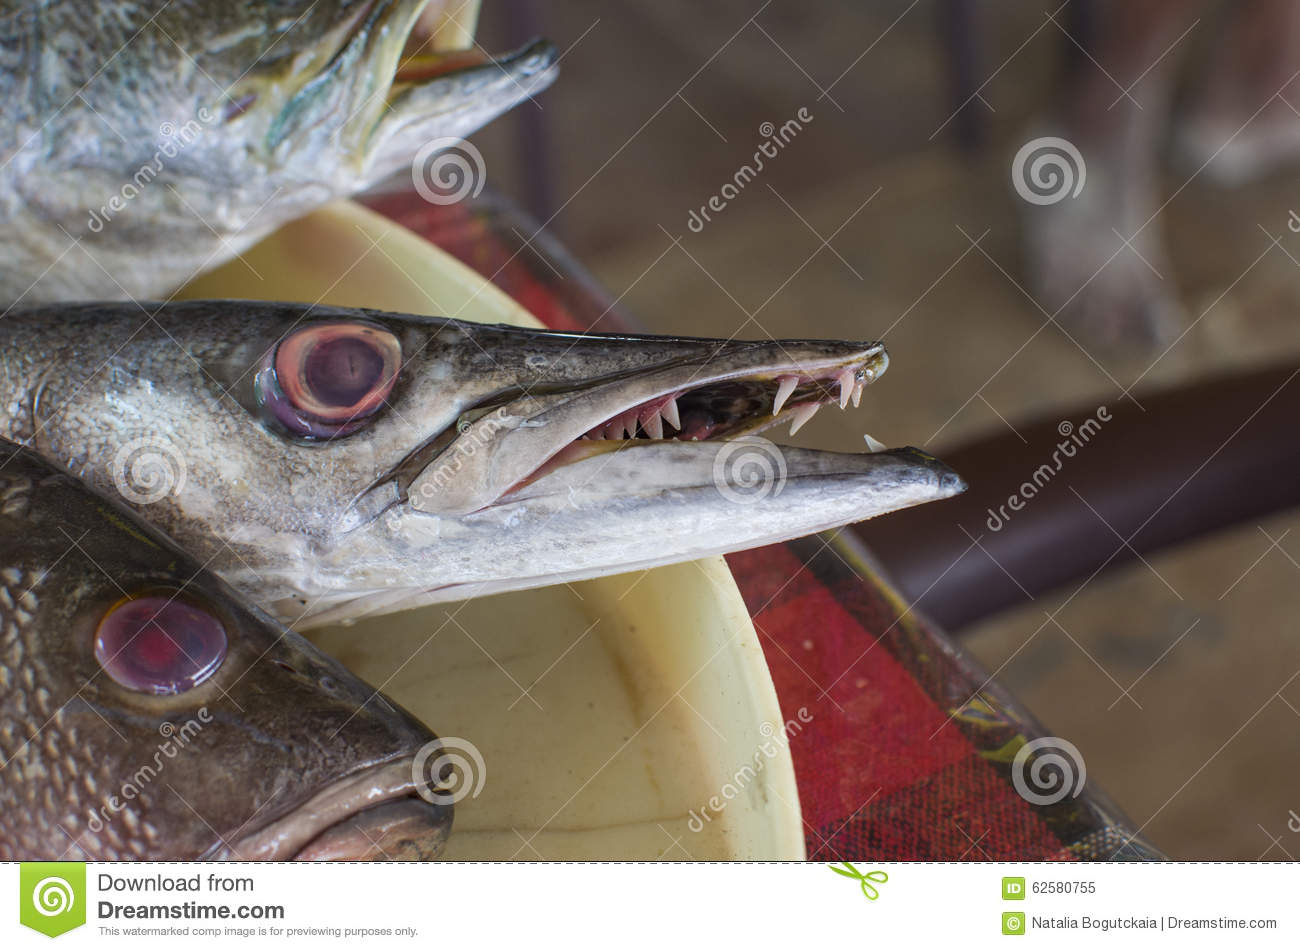 Fish A Barracuda With Teeth Stock Photo - Image: 62580755